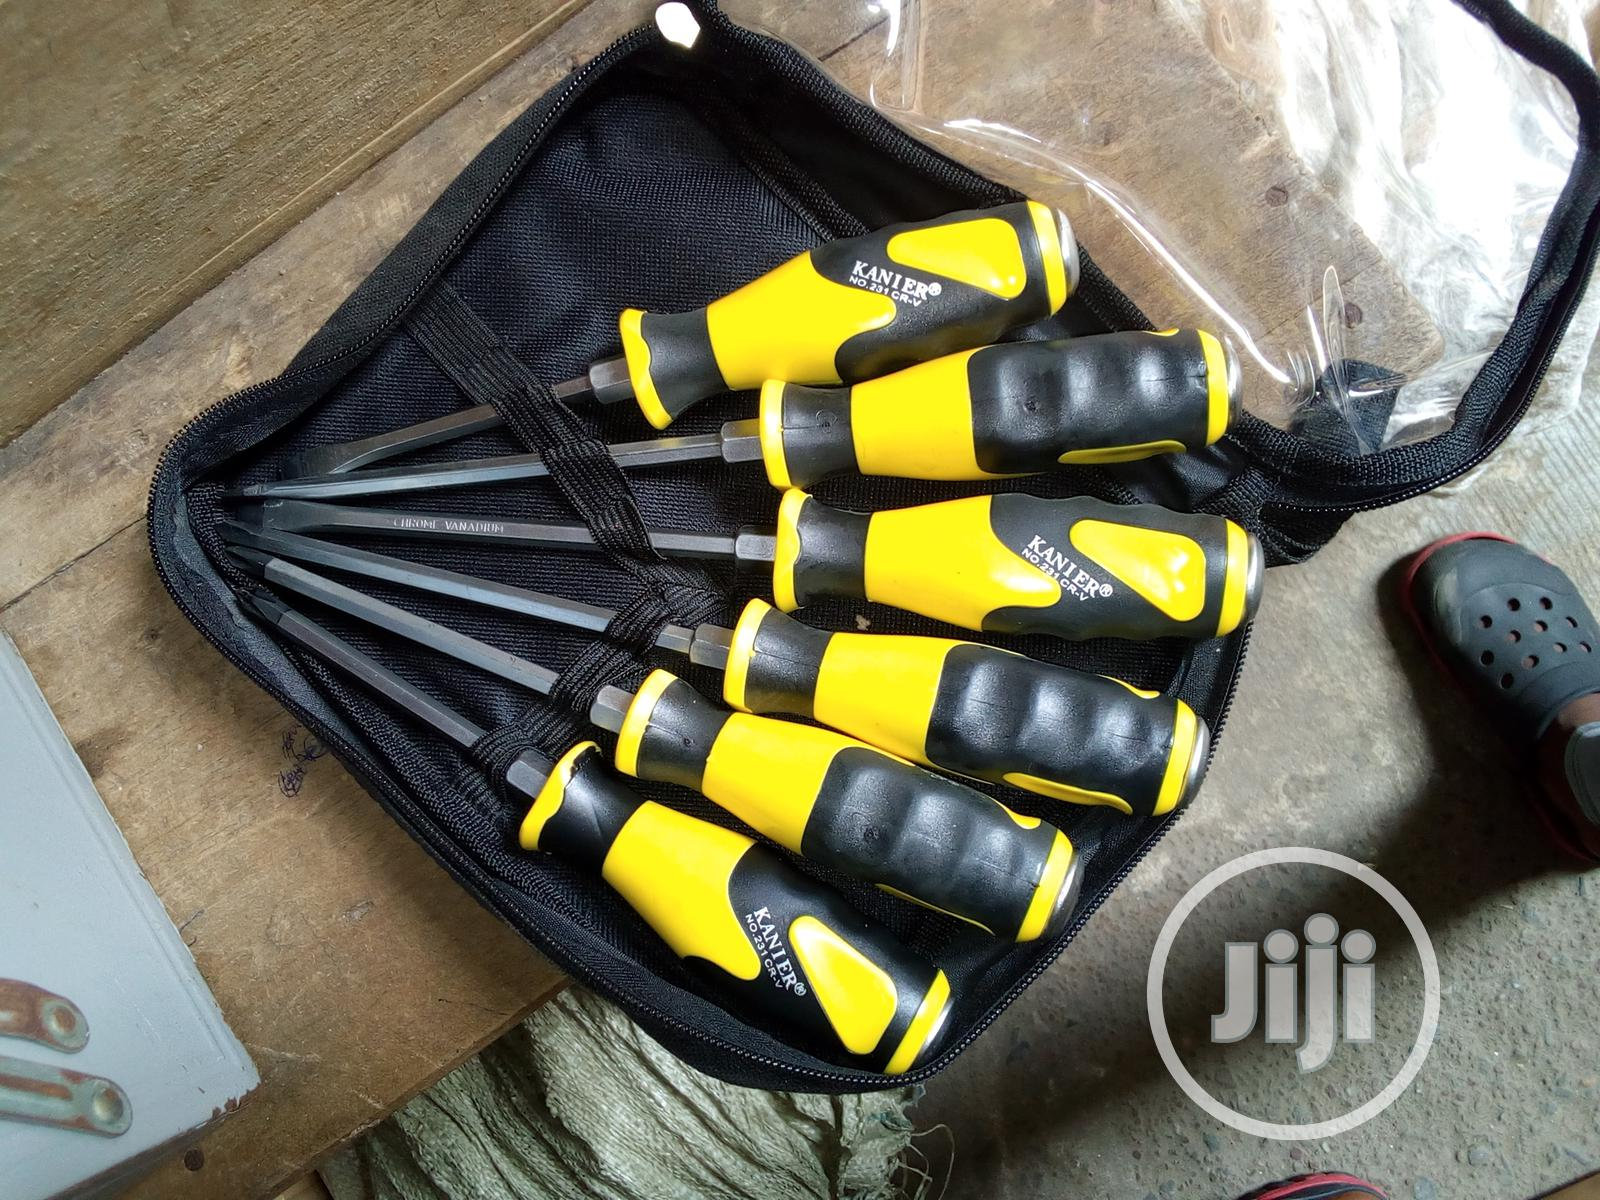 6 Pieces Set Of Mechanical Screwdriver